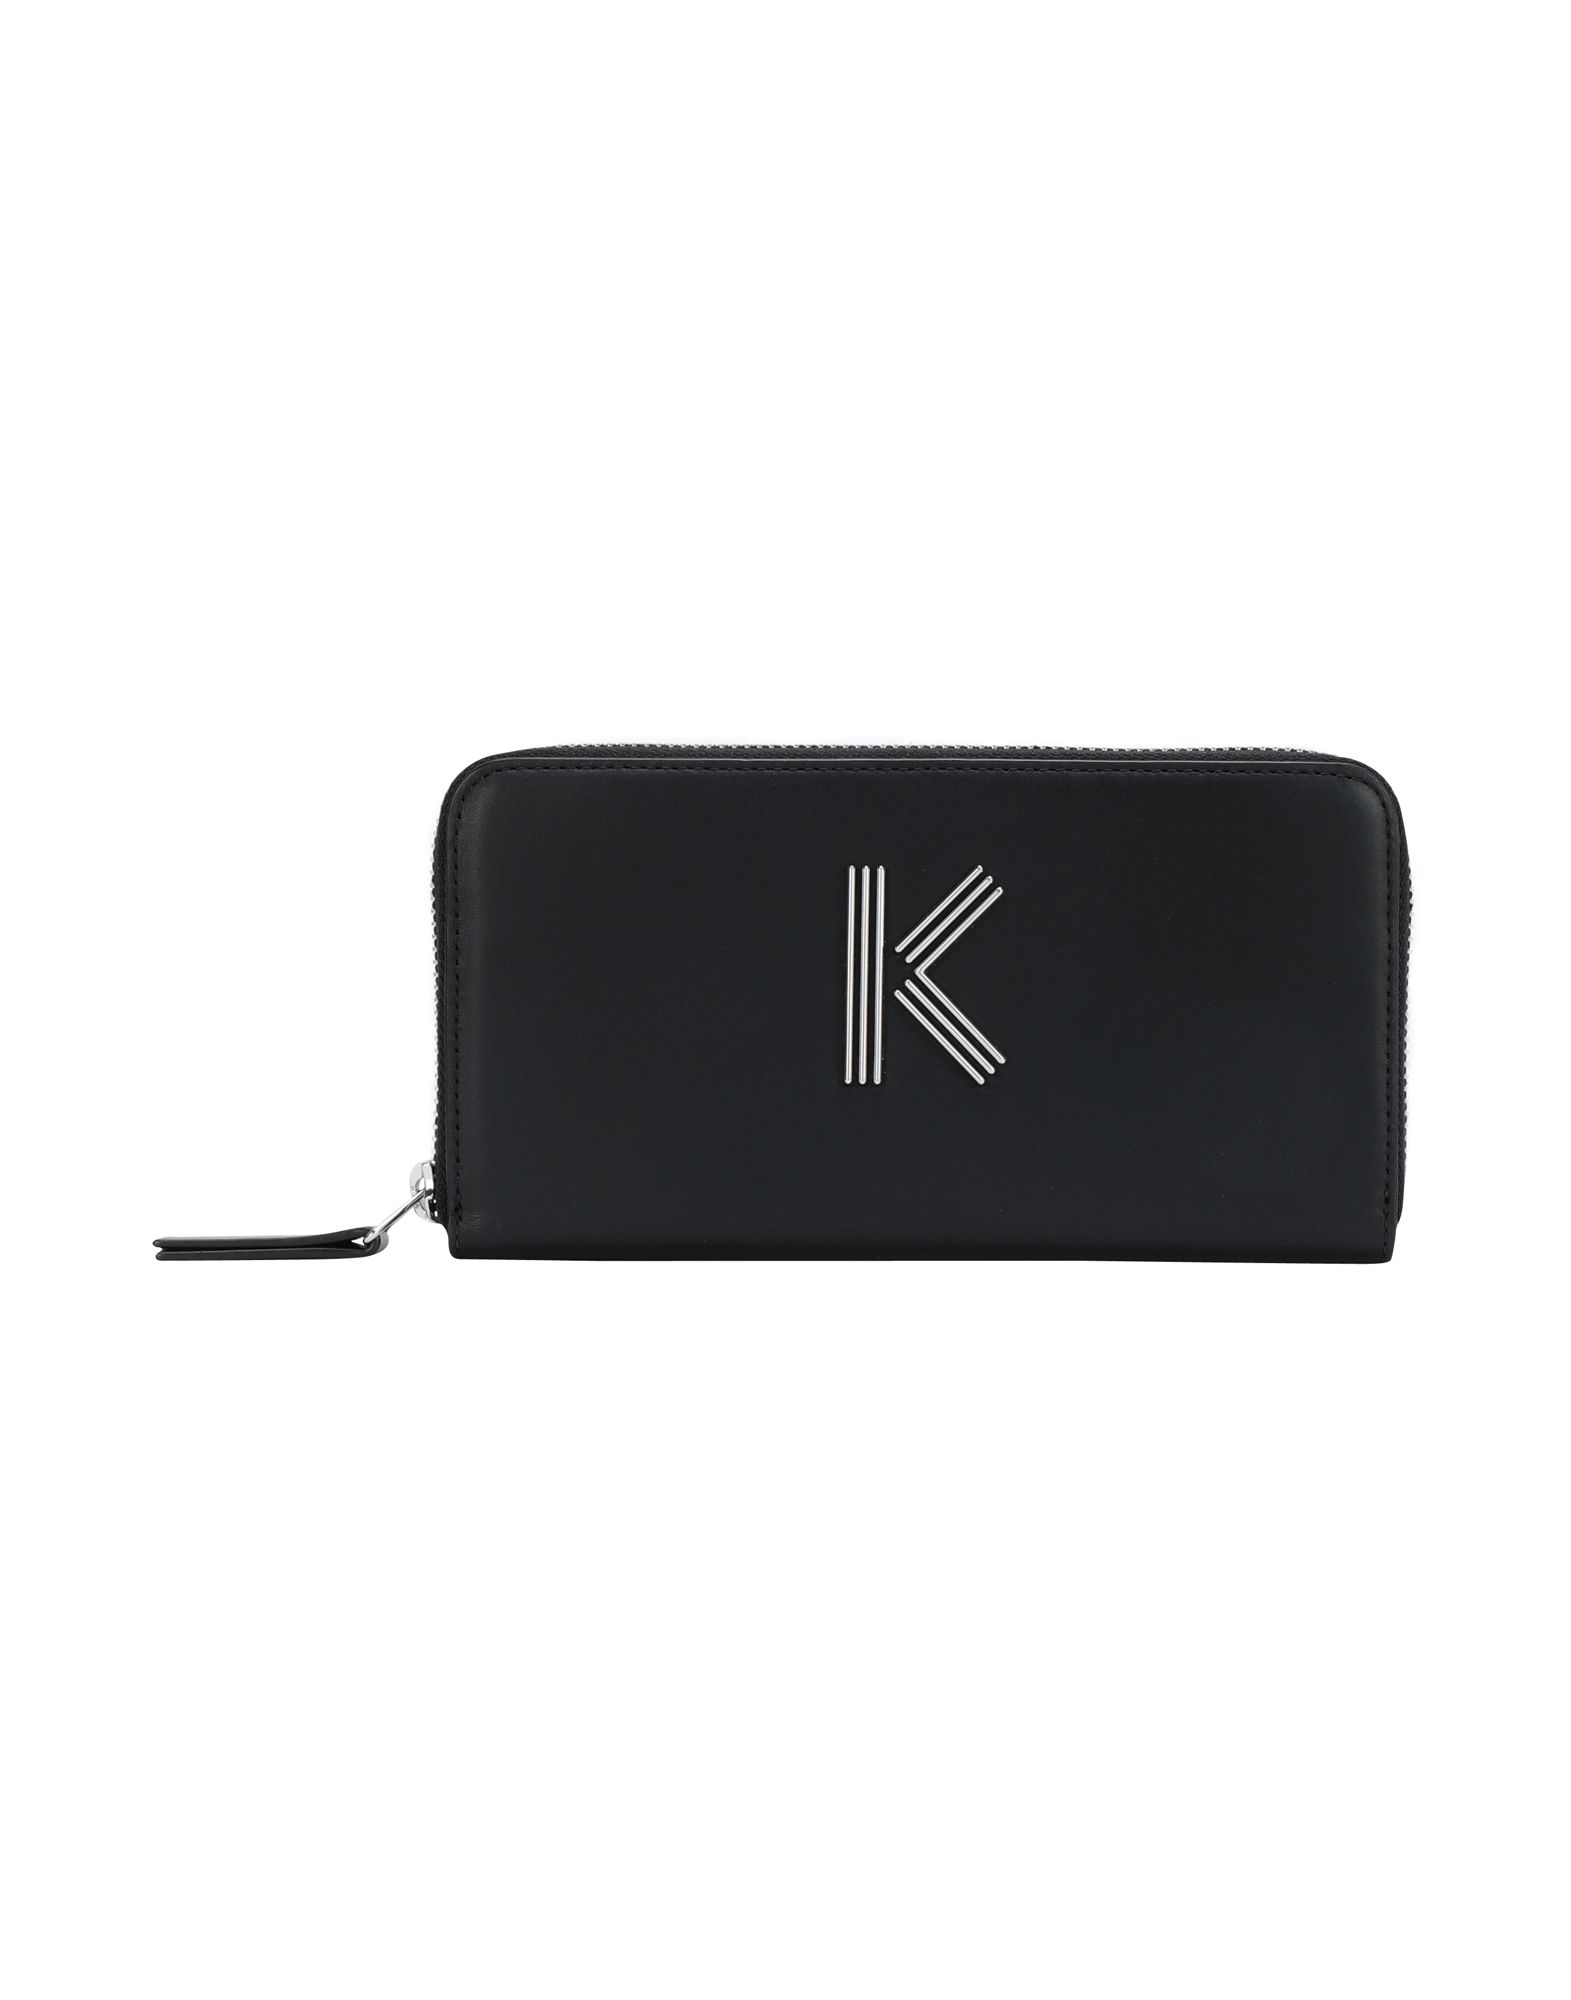 Kenzo K Leather Wallet In Black